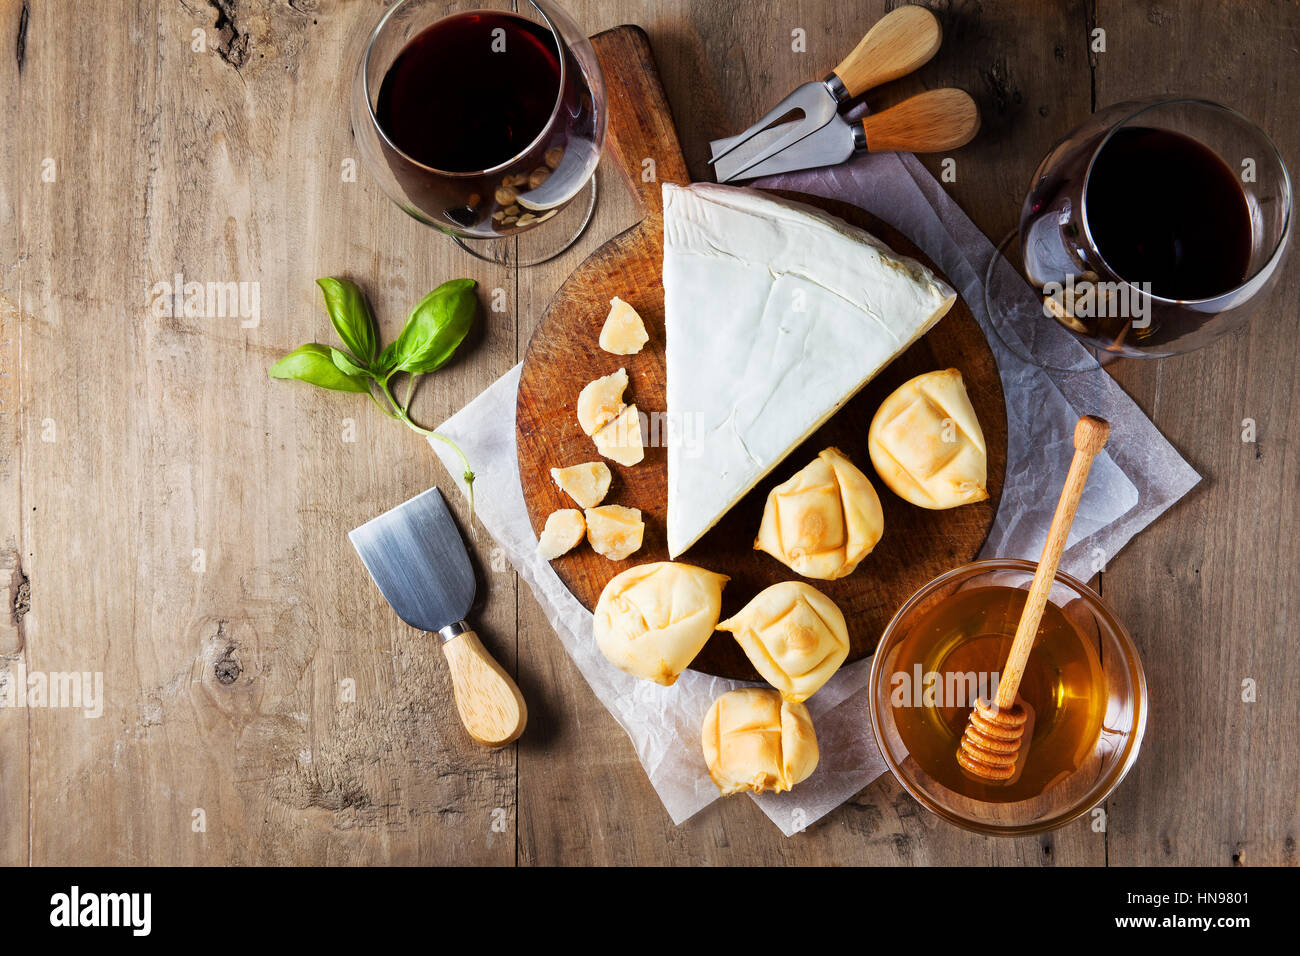 Cheese plate Assortment of various types of cheese and honey on wooden cutting board Stock Photo